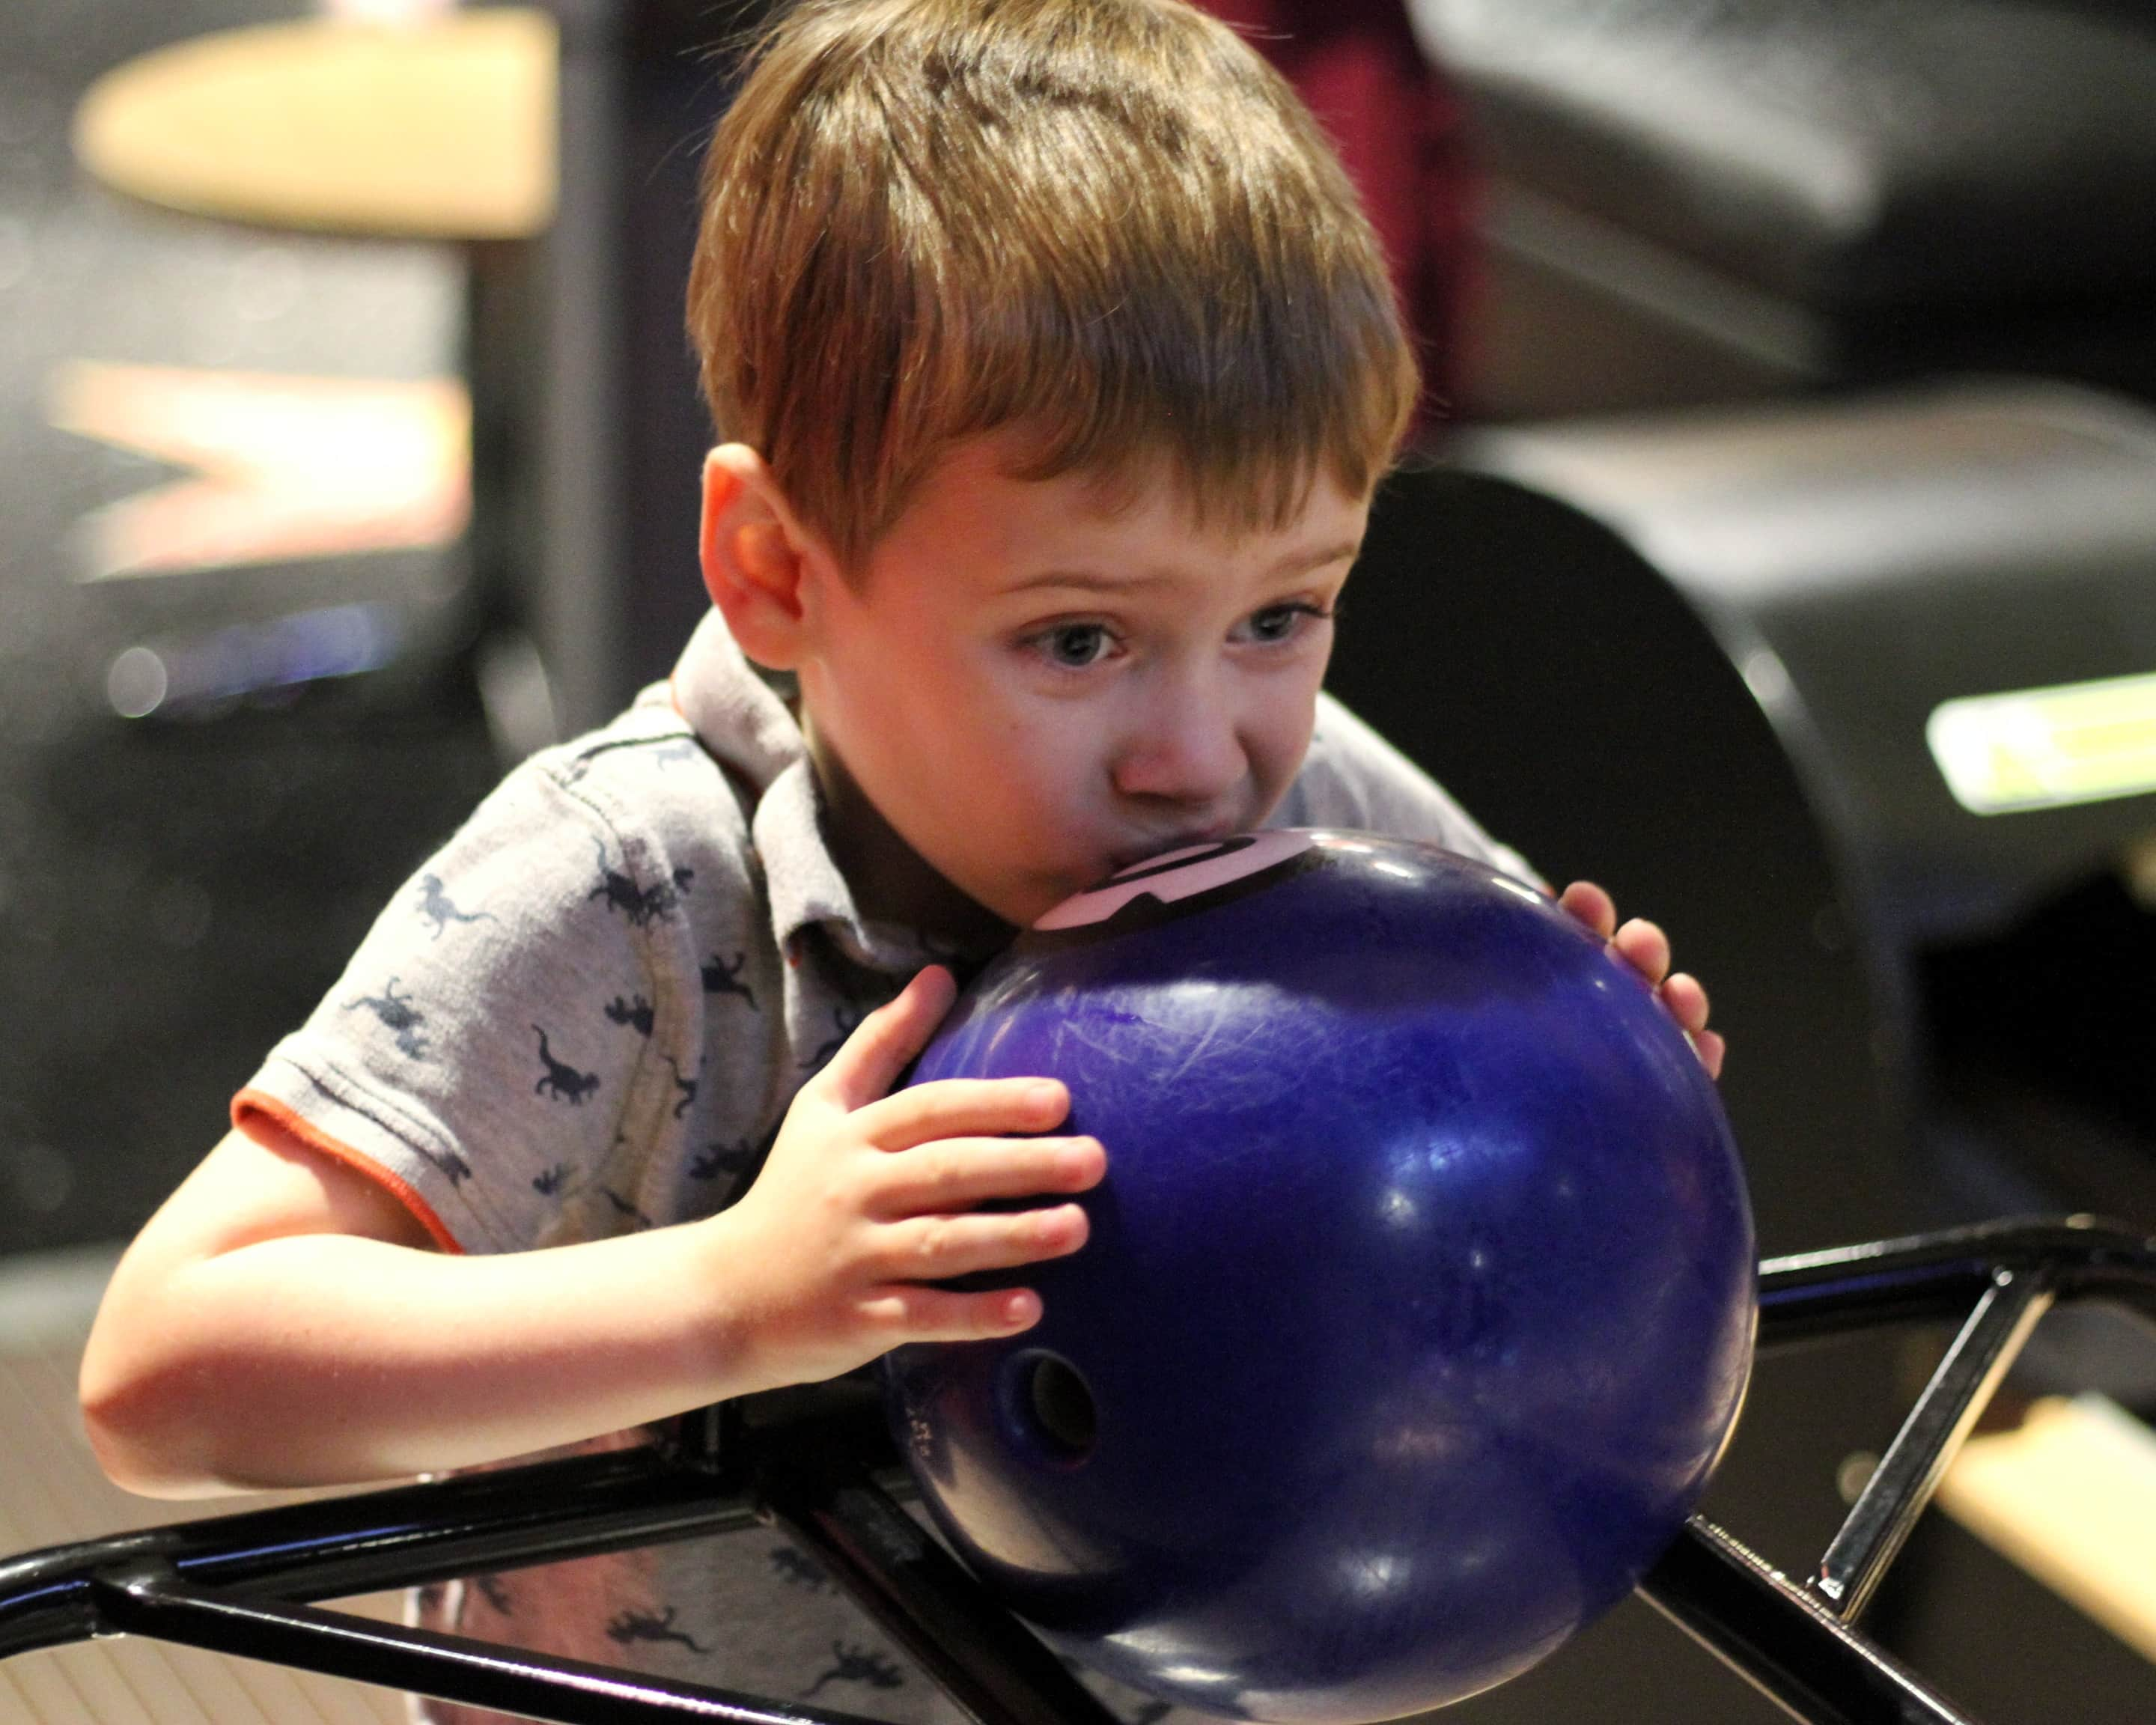 Biggest concentrating on a bowling ball